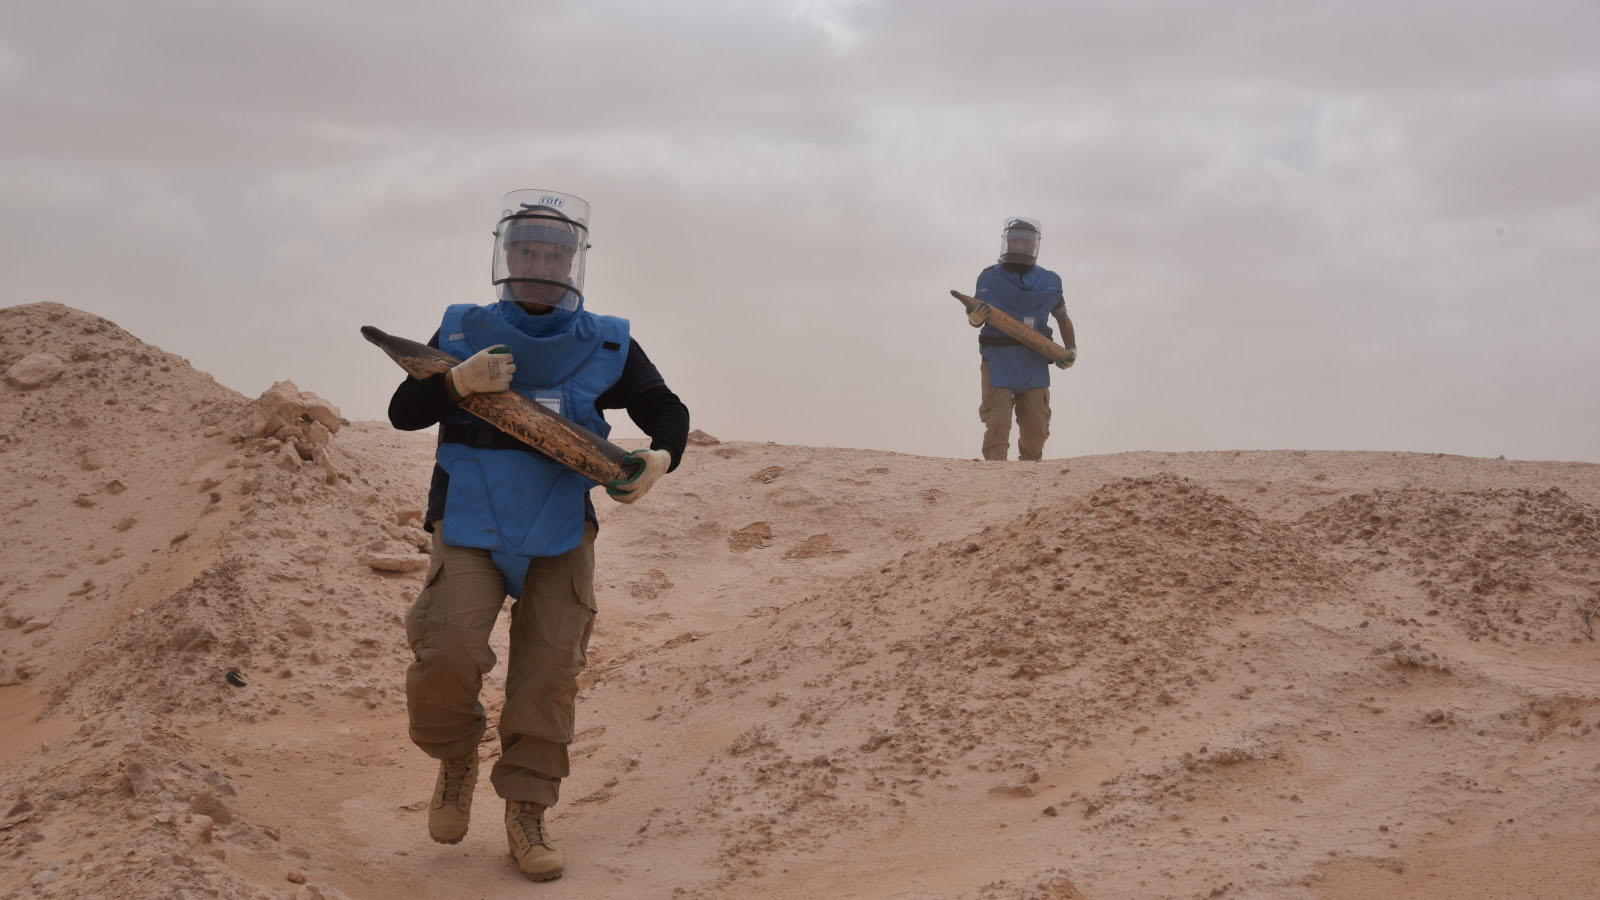 Demining operations conducted by HI near Misrata, Libya, in 2019.